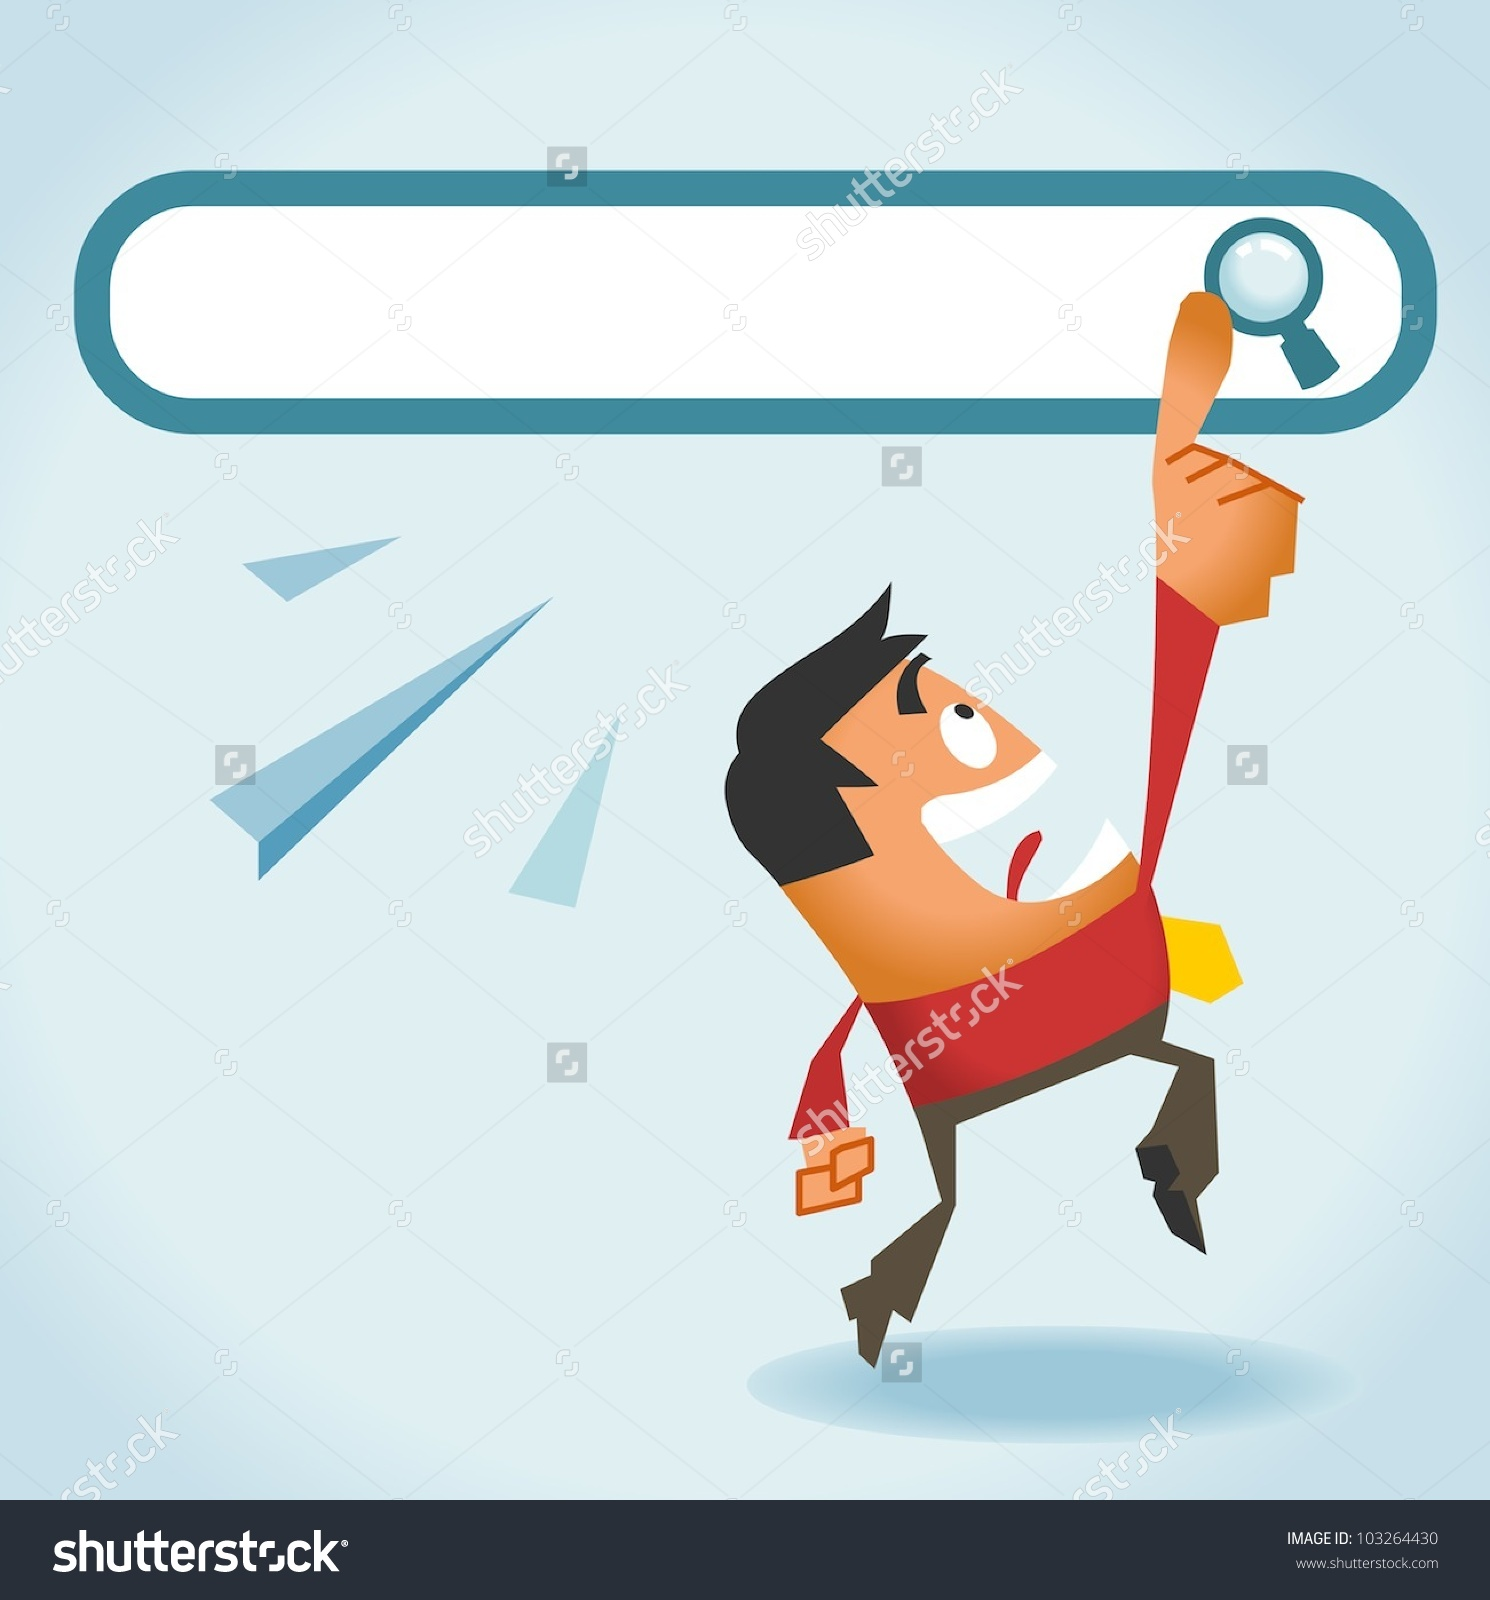 Search Engine All We Need Vector Stock Vector 103264430.